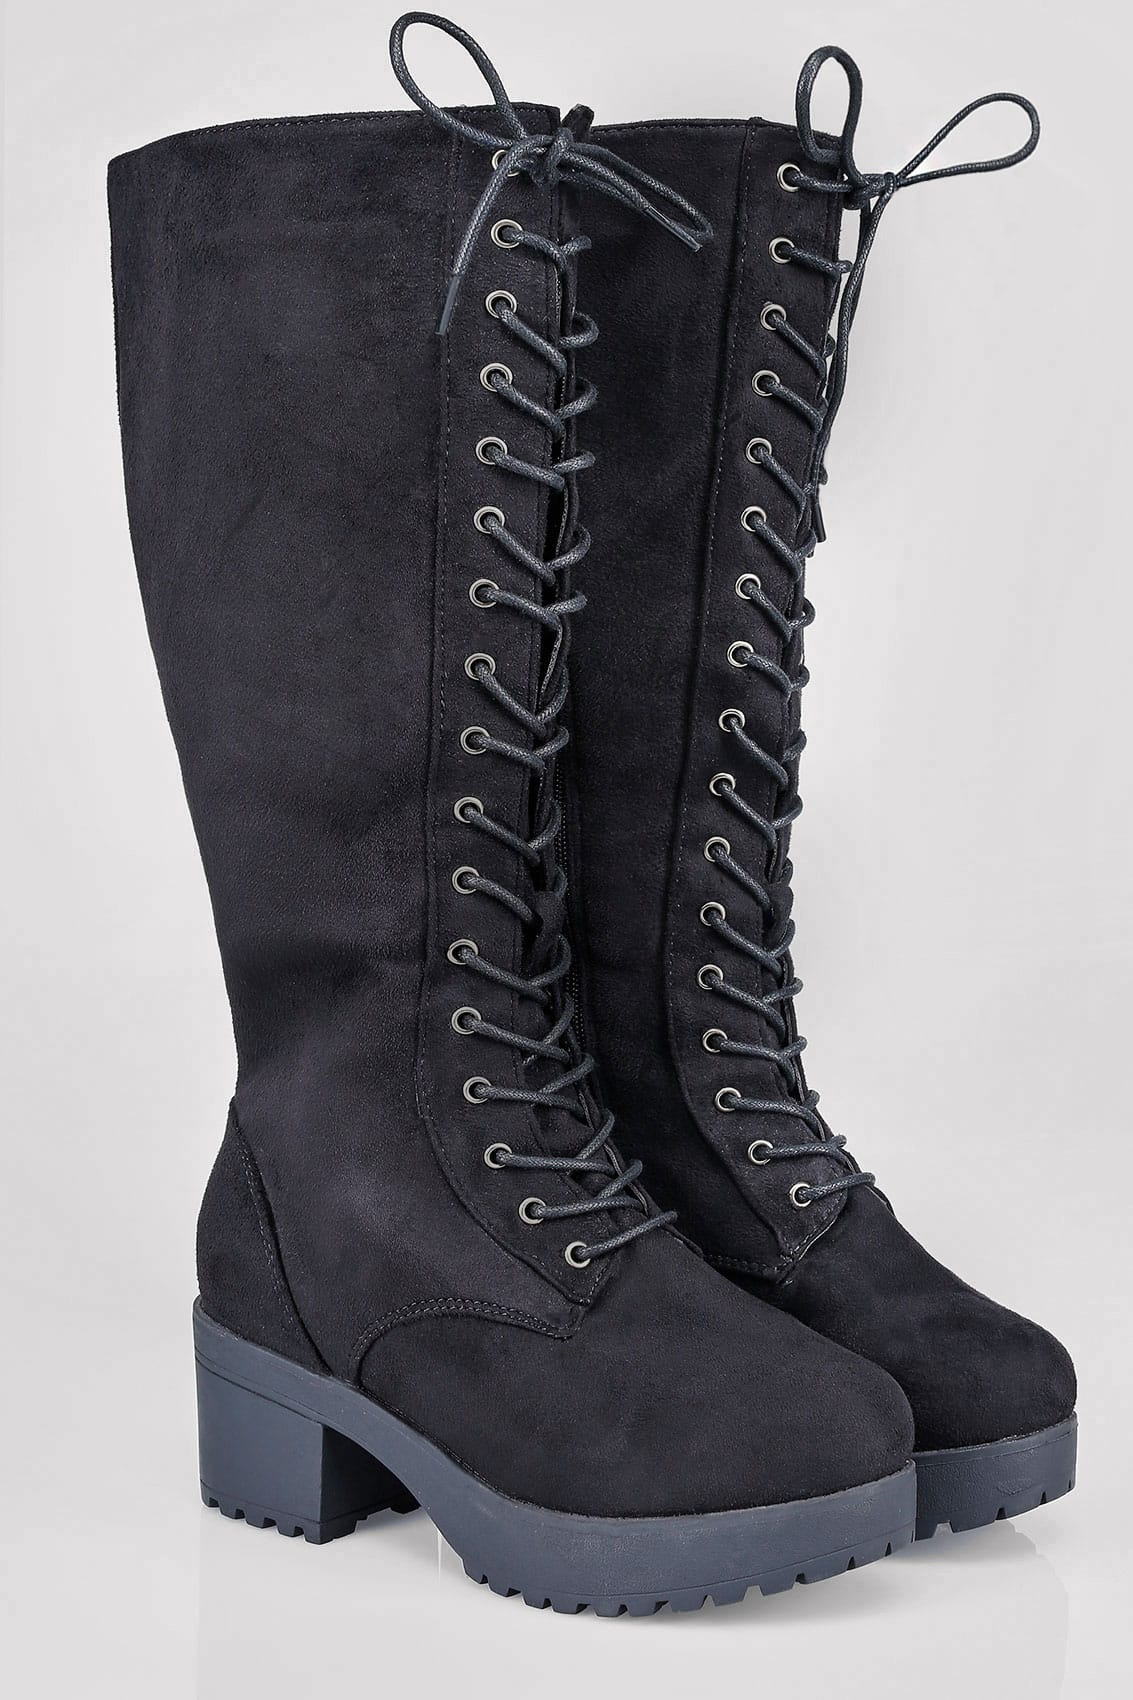 Black Knee High Lace Up Heeled Boot In Eee Fit 4eee 5eee